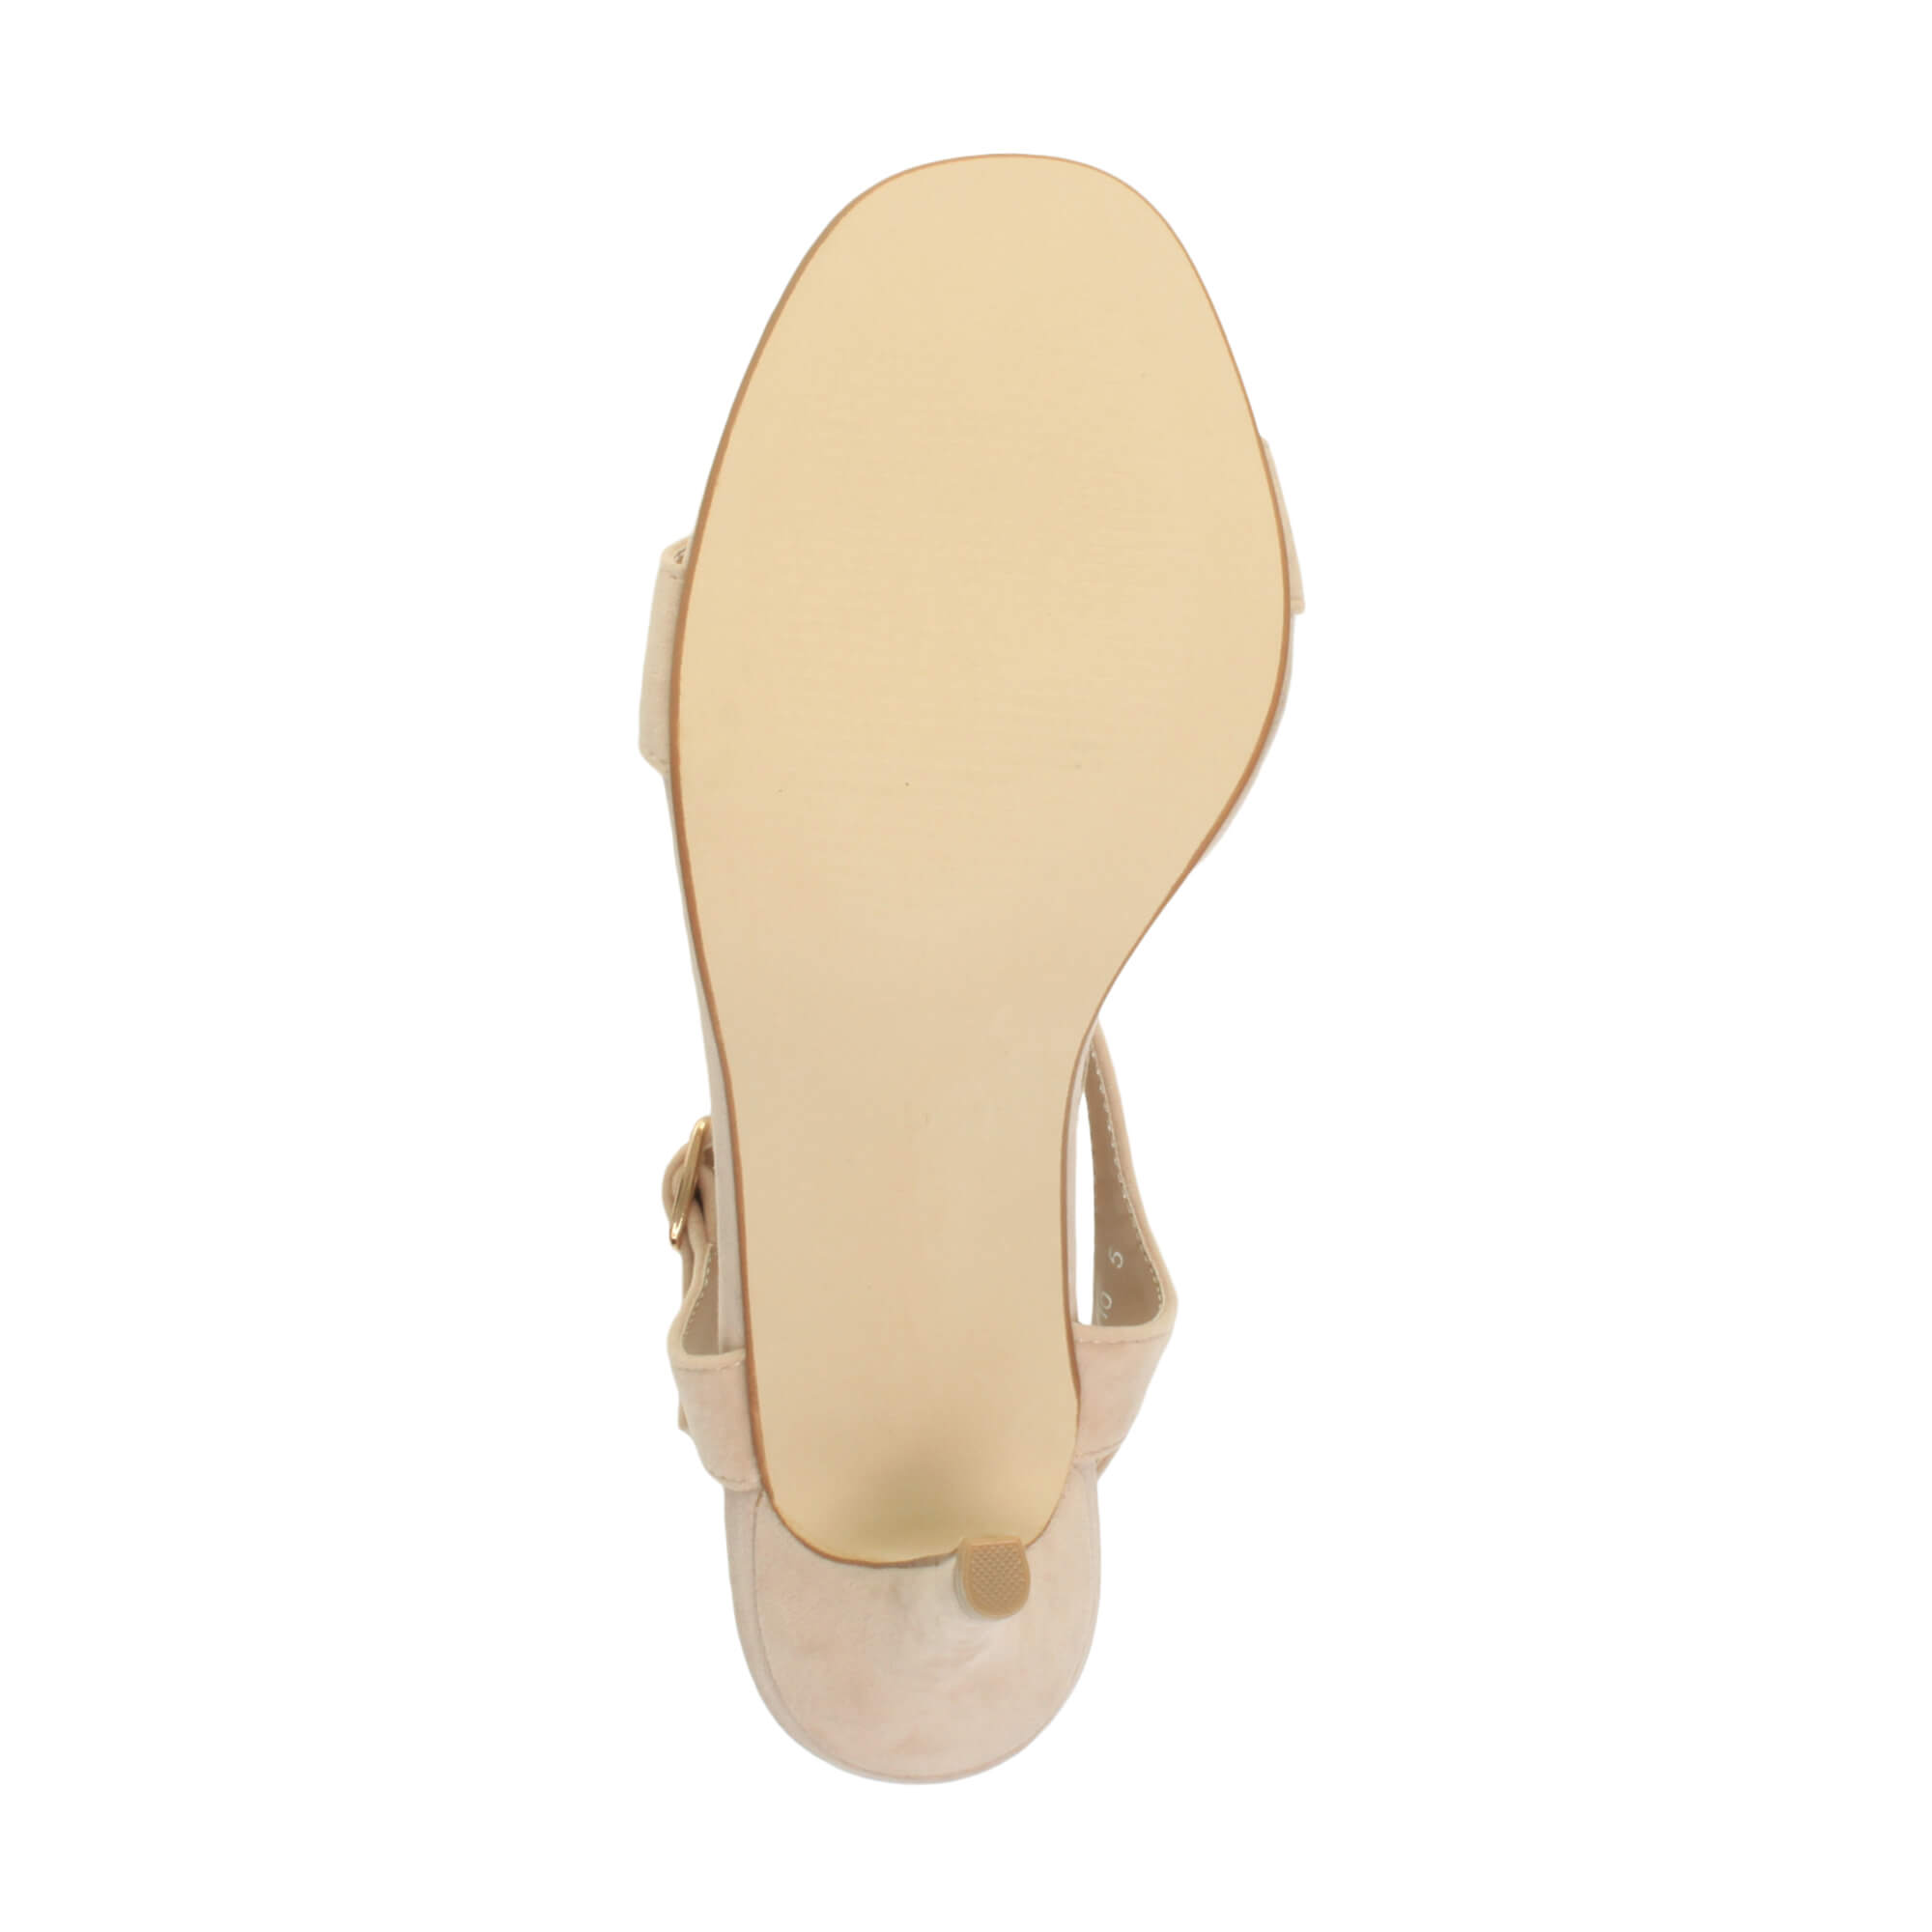 WOMENS-LADIES-HIGH-HEEL-BUCKLE-STRAPPY-BASIC-BARELY-THERE-SANDALS-SHOES-SIZE thumbnail 106